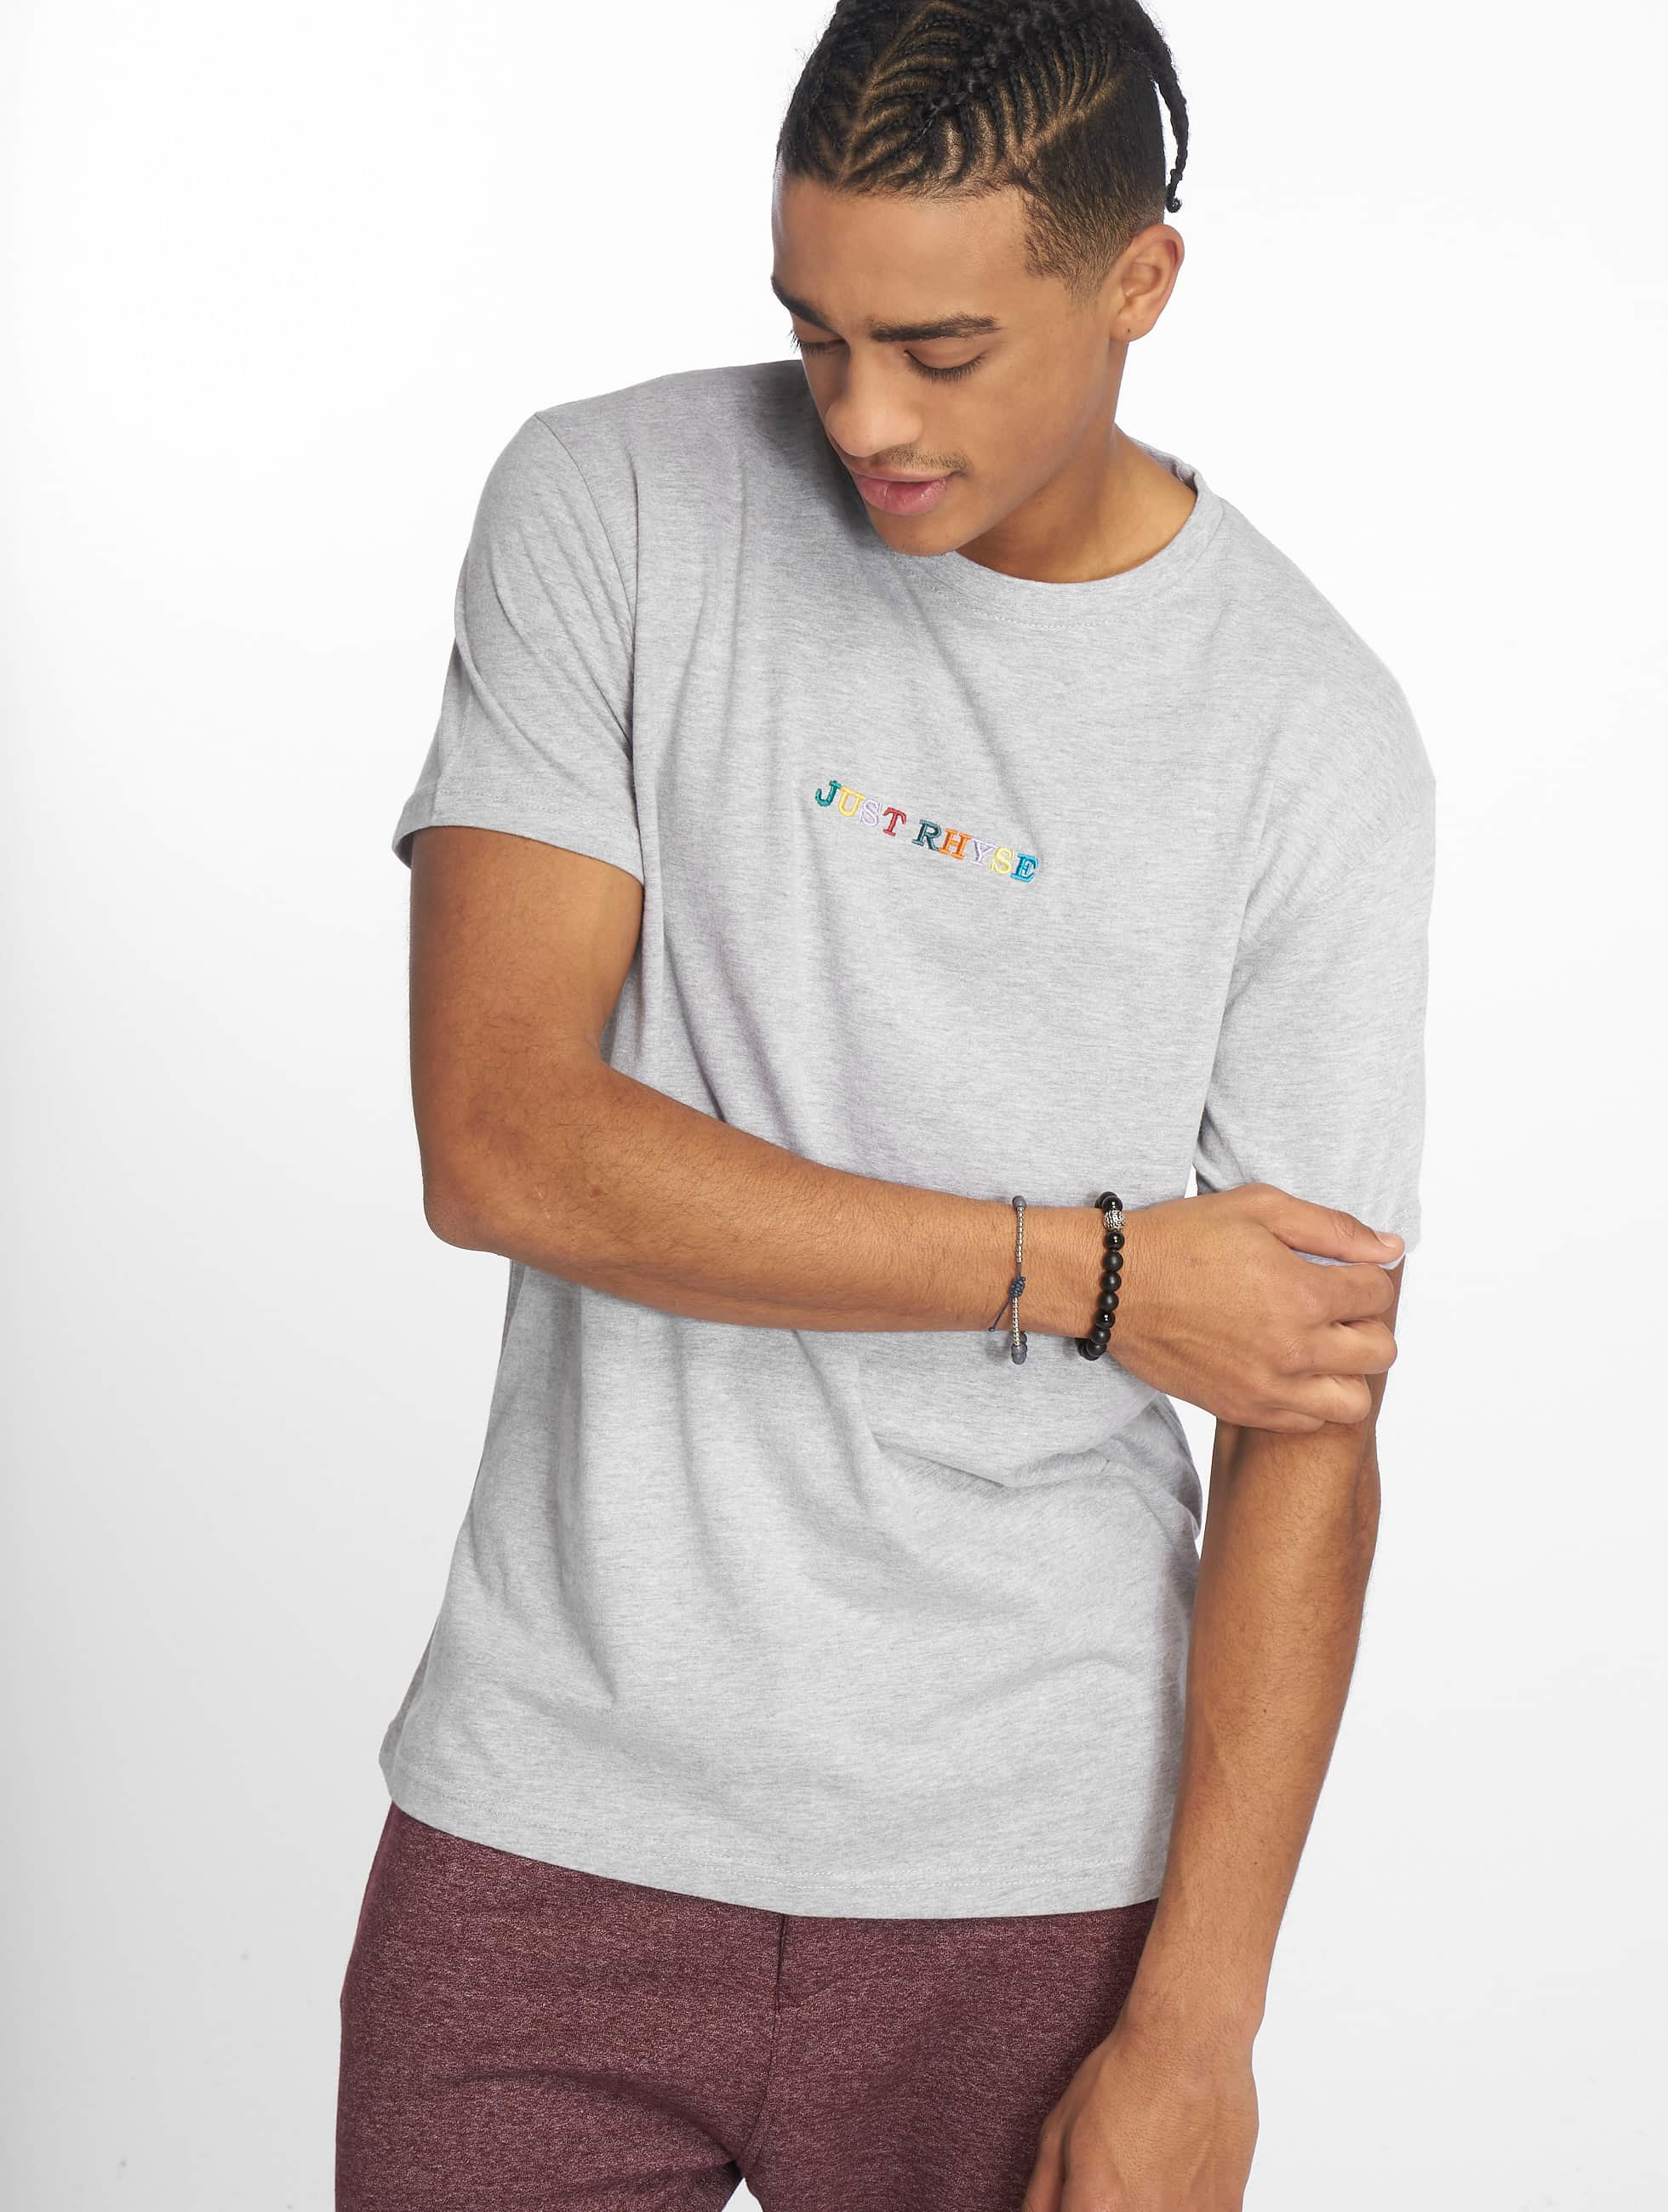 Just Rhyse / T-Shirt Niceville in grey XL